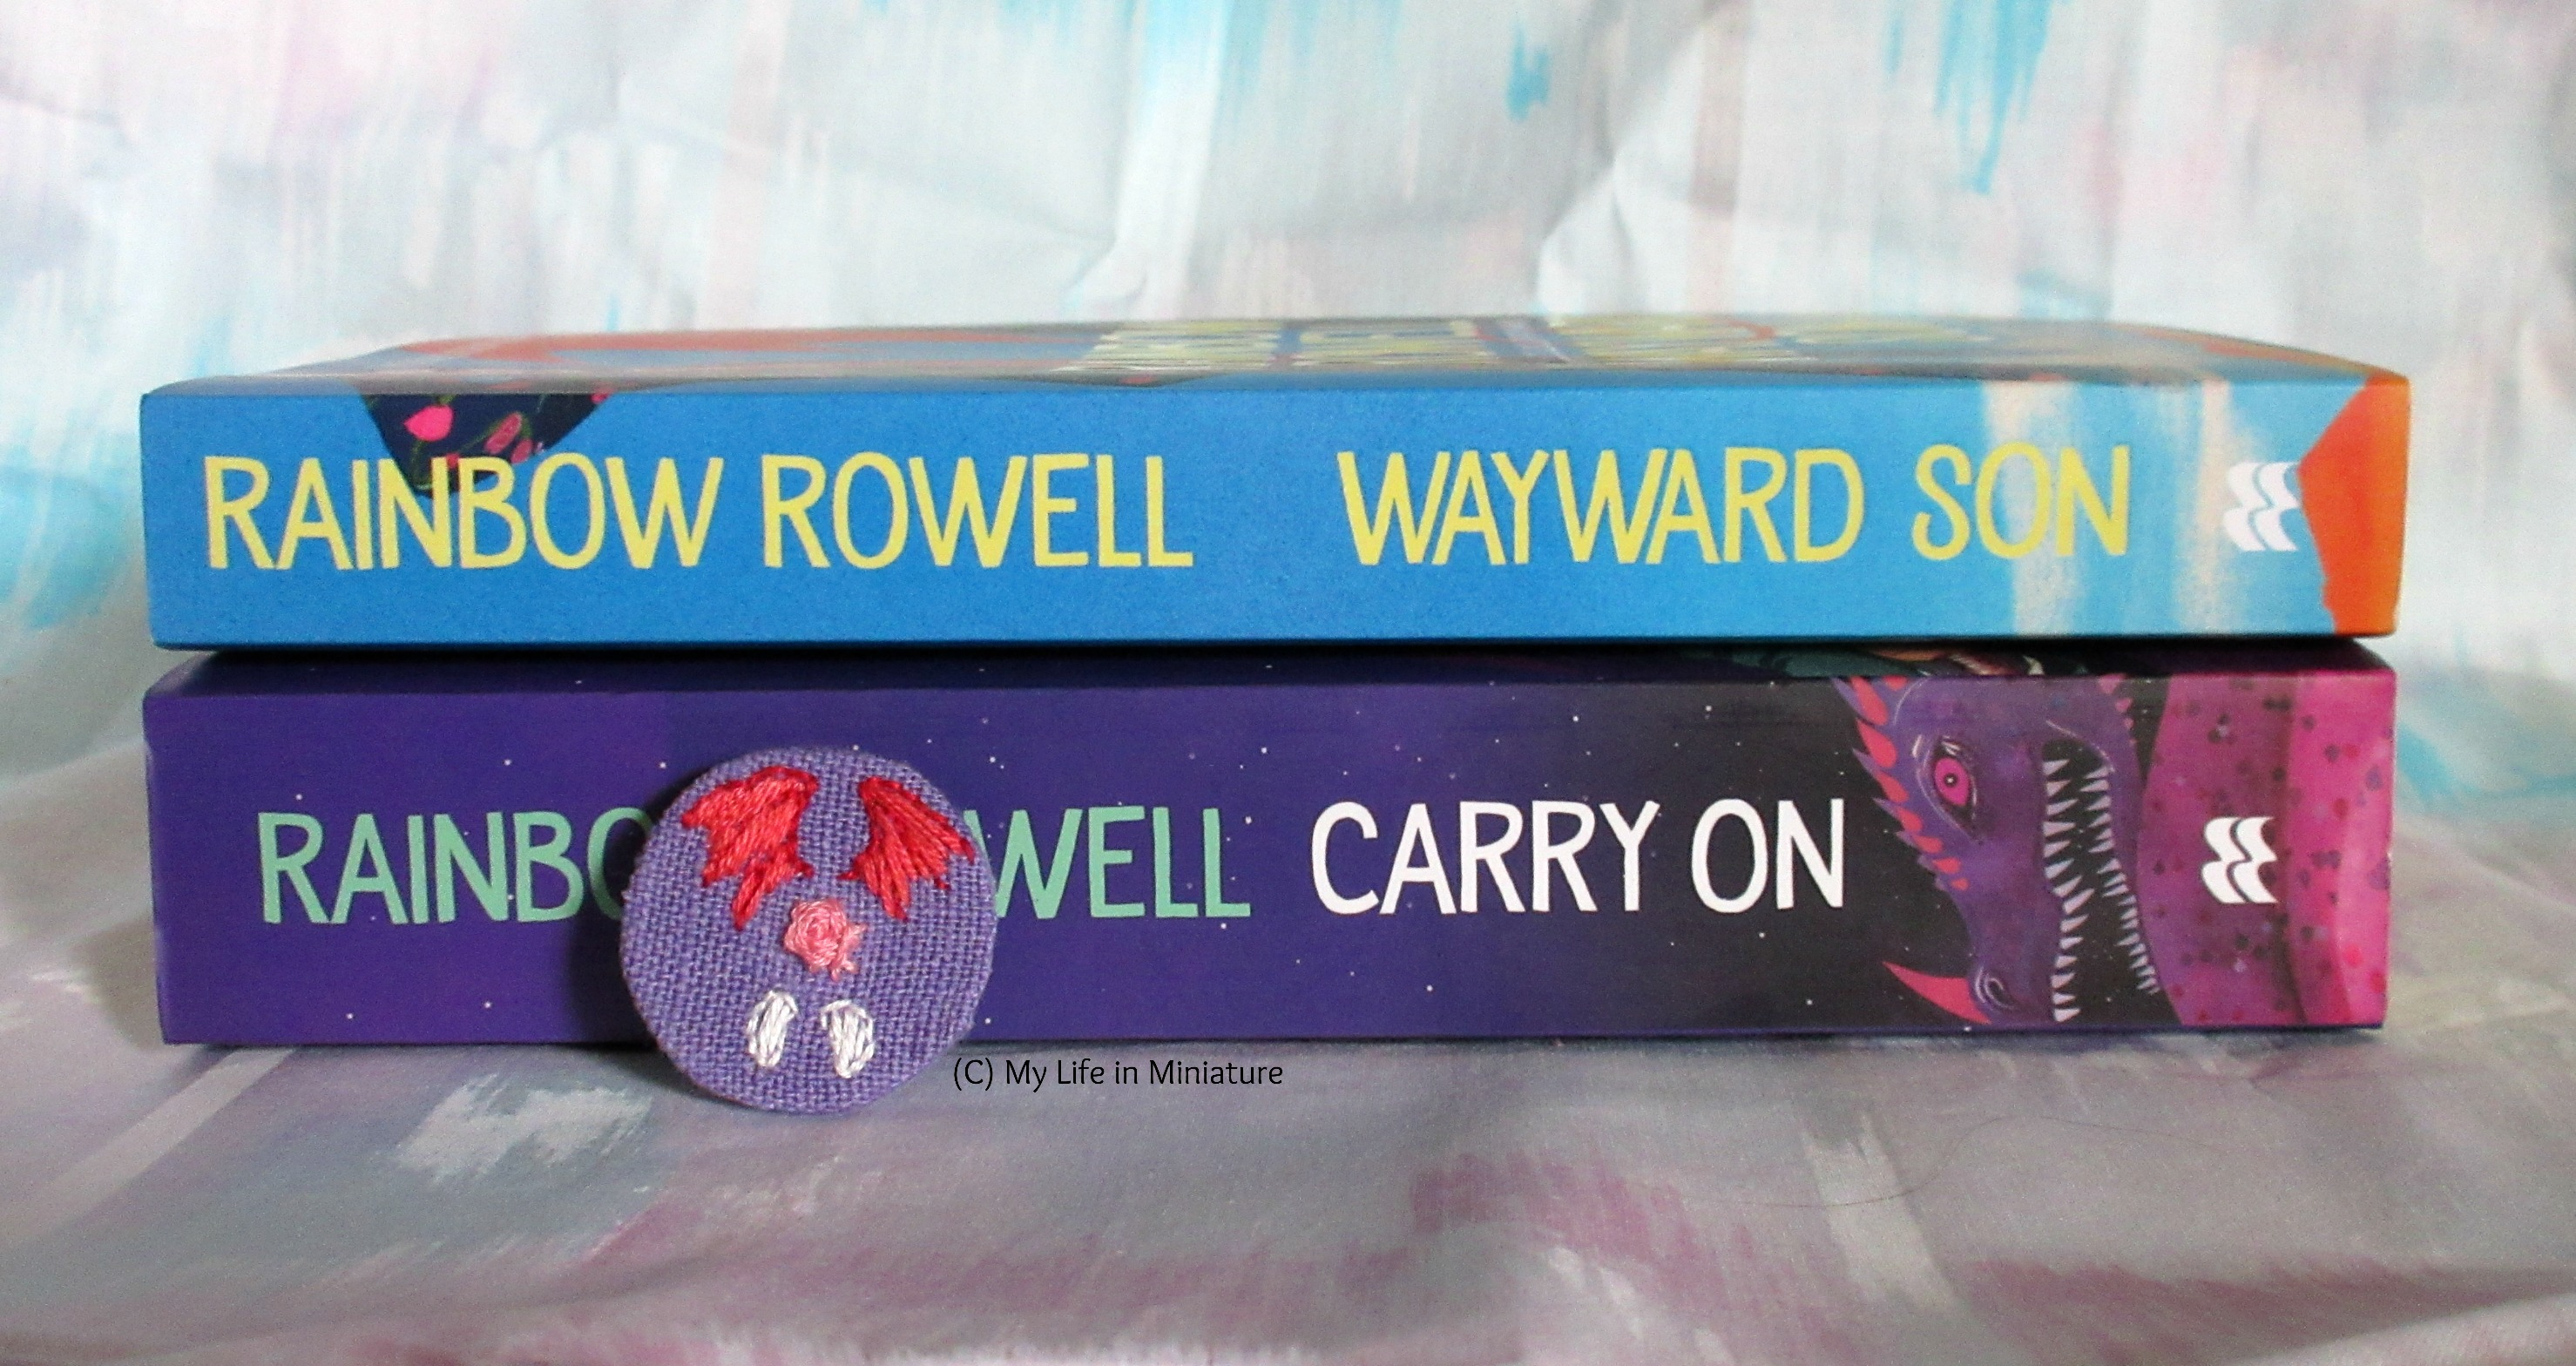 'Carry On' and 'Wayward Son' by Rainbow Rowell sit stacked on each other, spines facing the camera. The badge leans up against the spine of 'Carry On'.